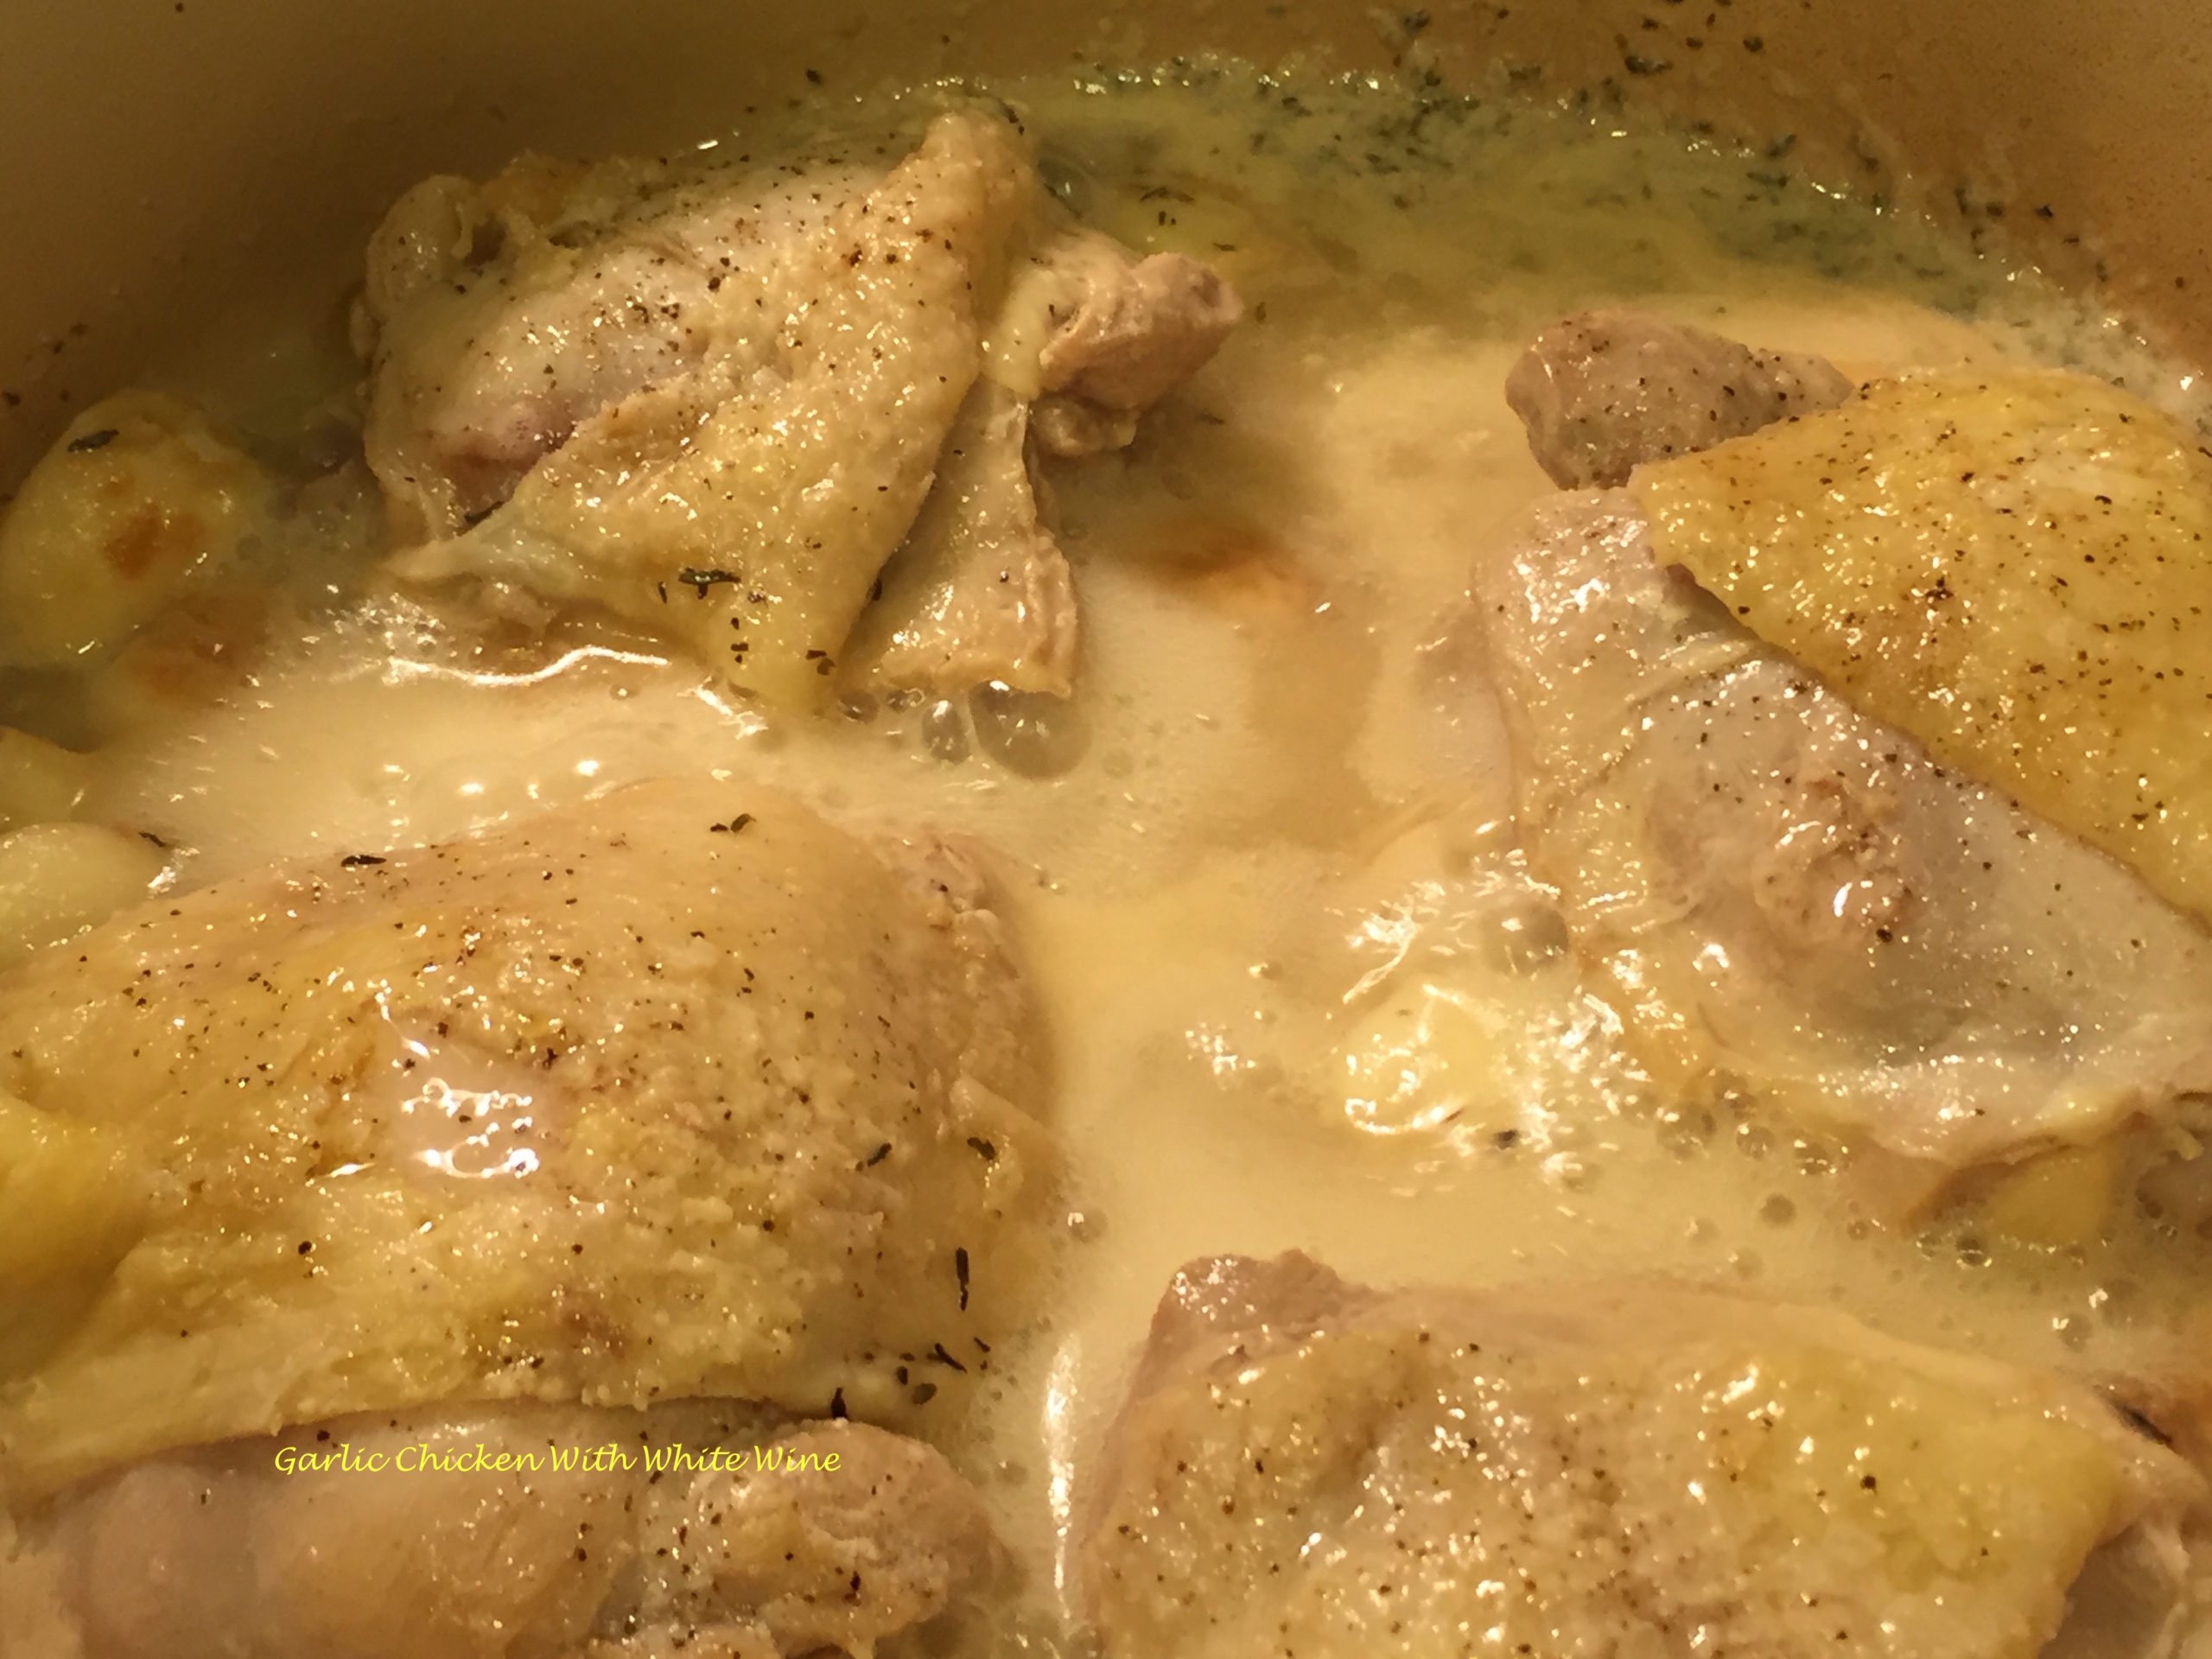 Garlic Chicken With White Wine